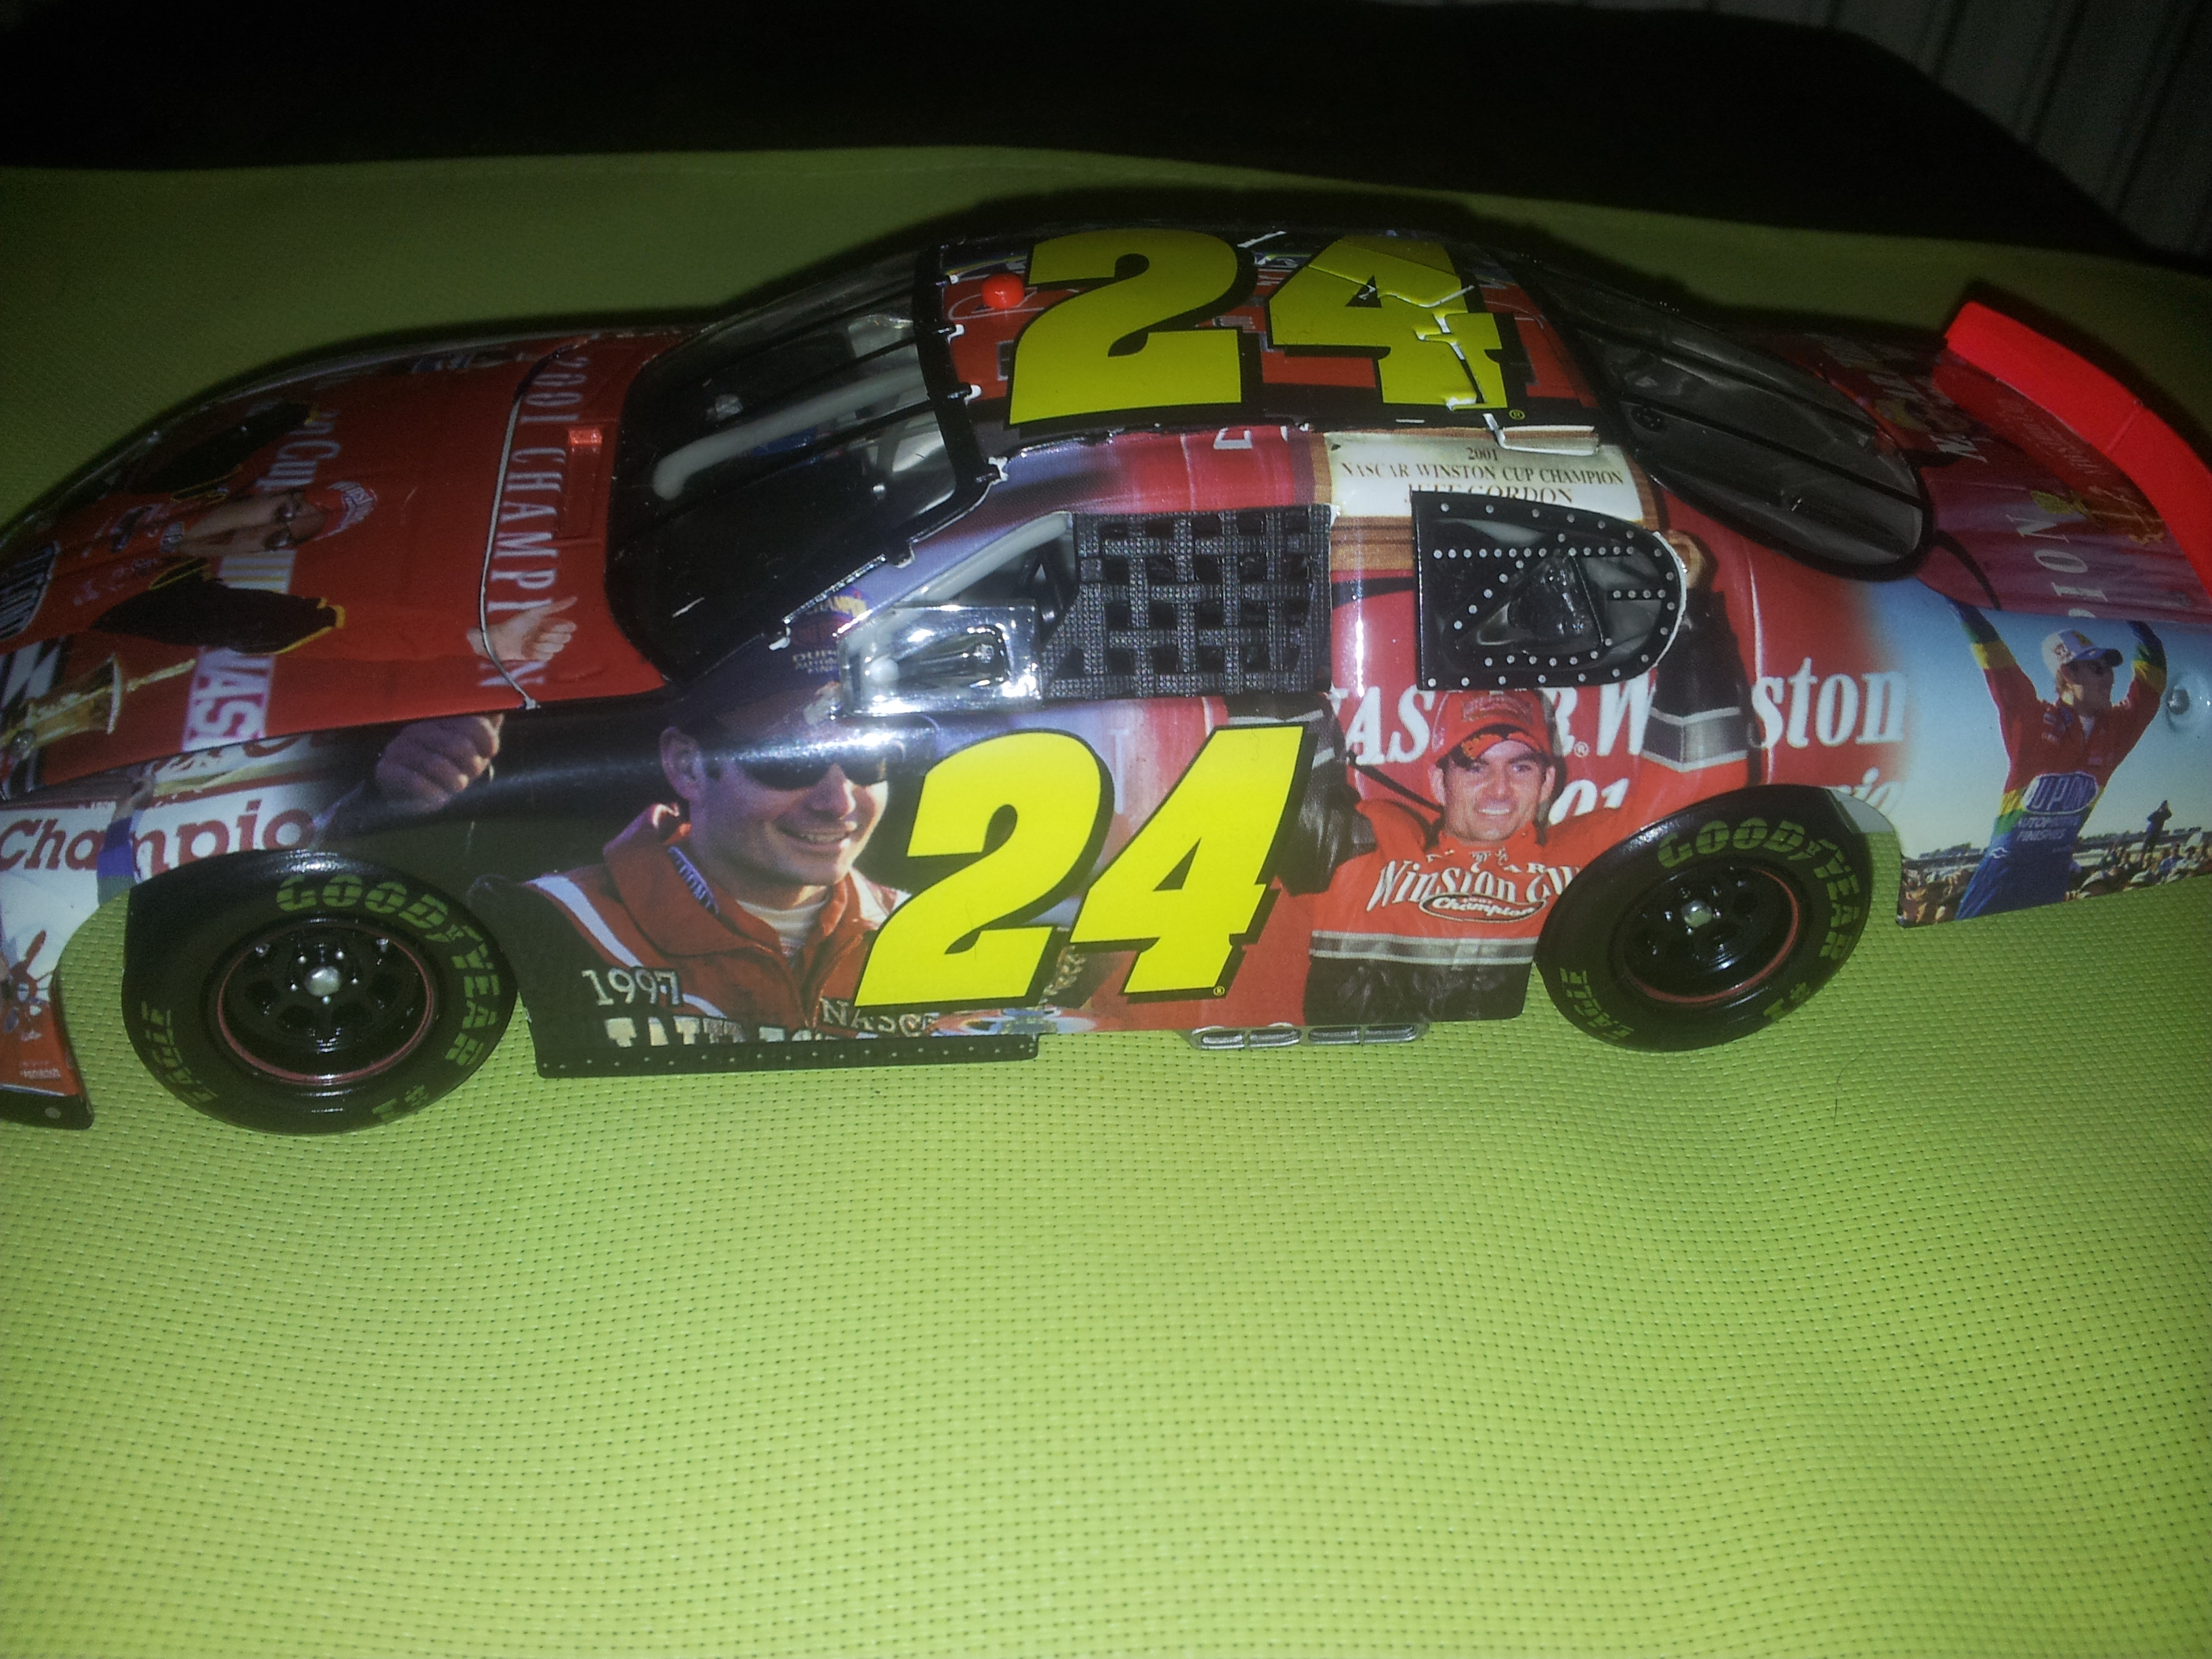 Nascar & Jeff Gordon's tribute 80460720150212110313